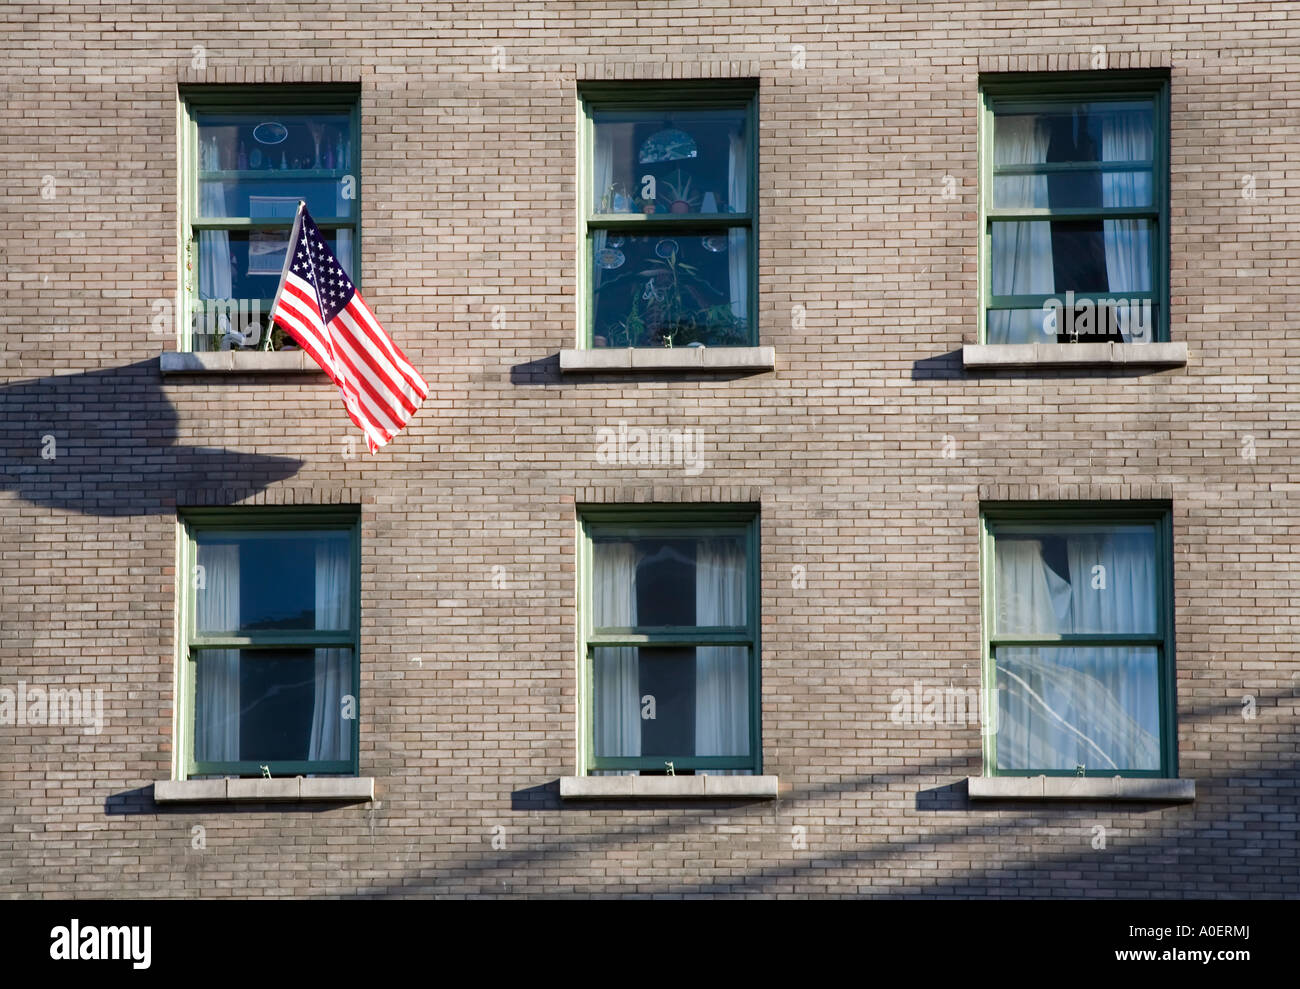 Apartment windows in building with American flag flying